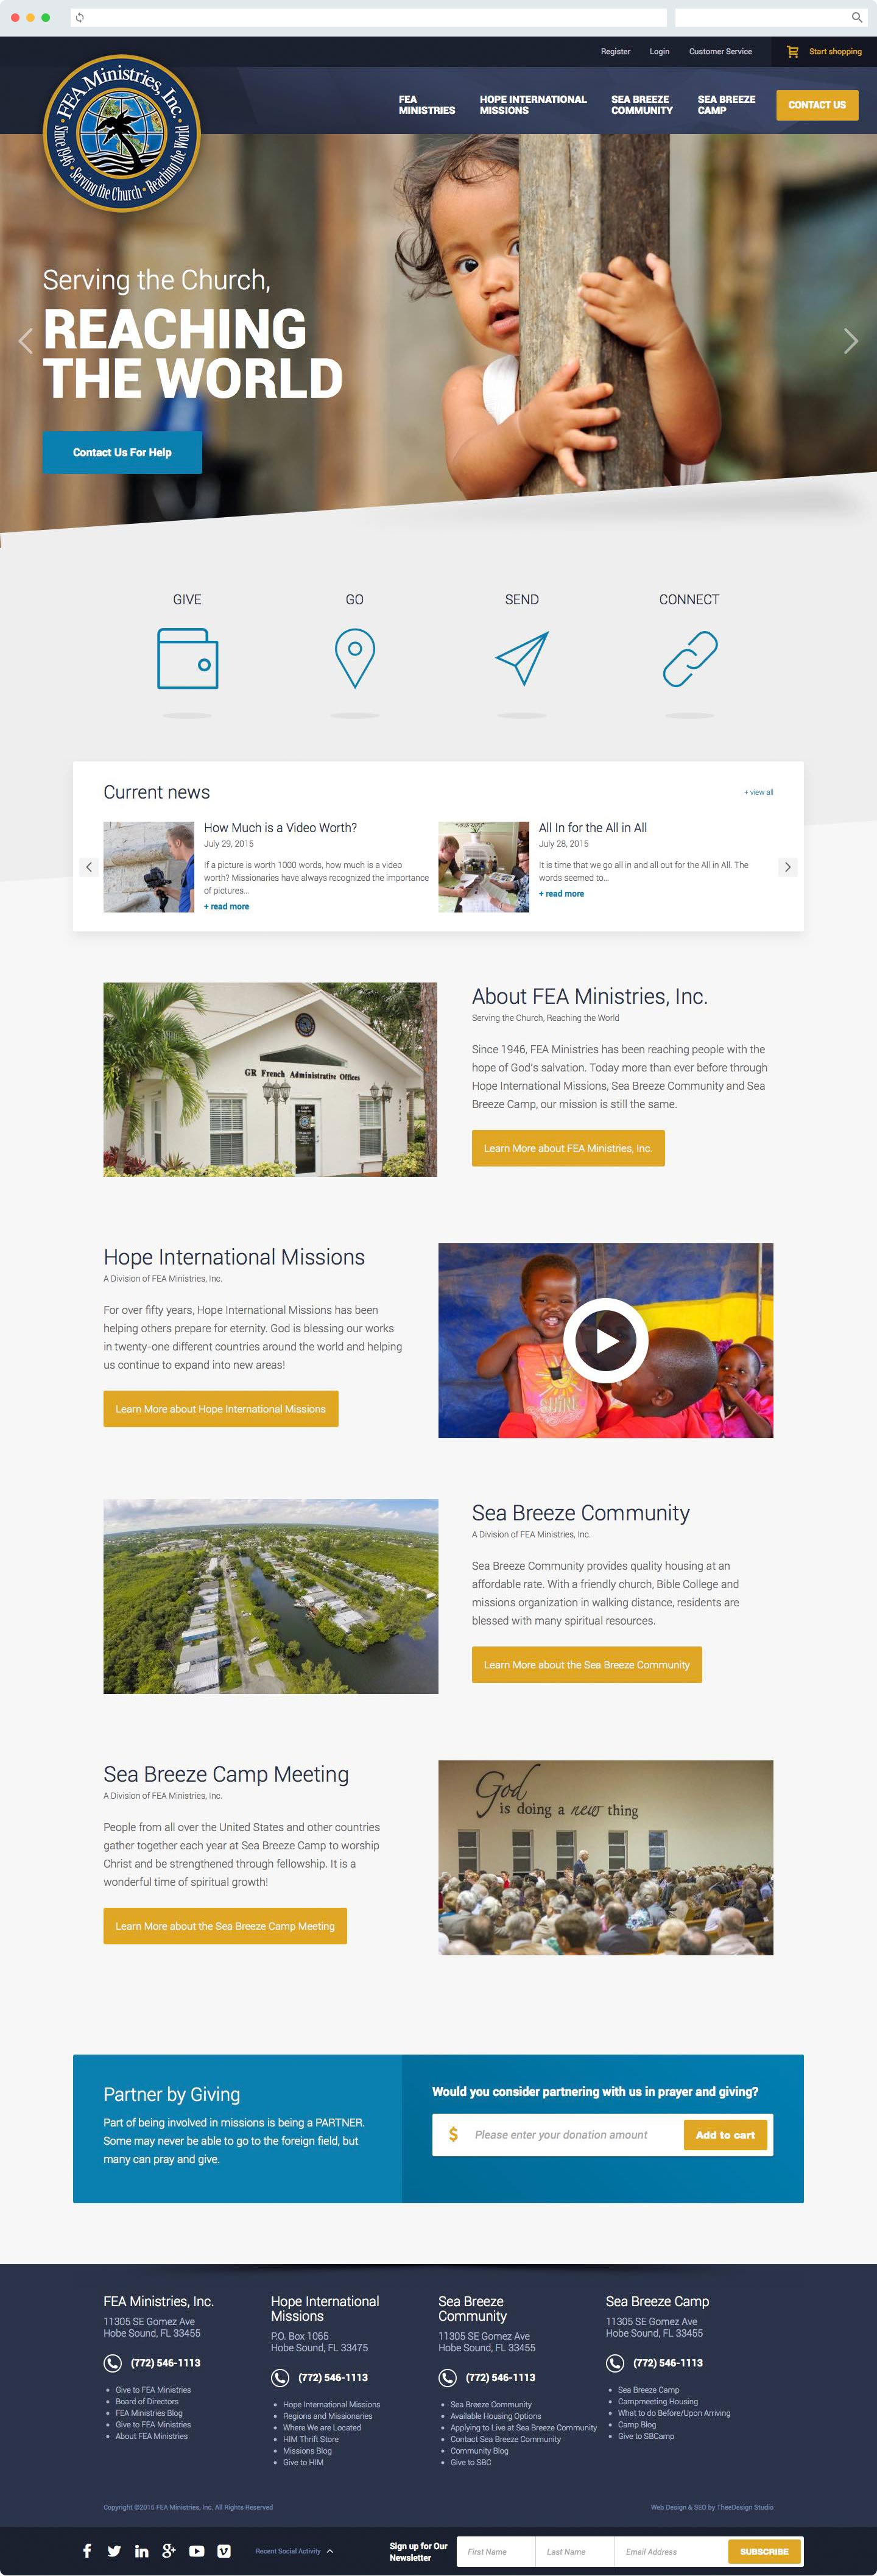 Nonprofit Web Design